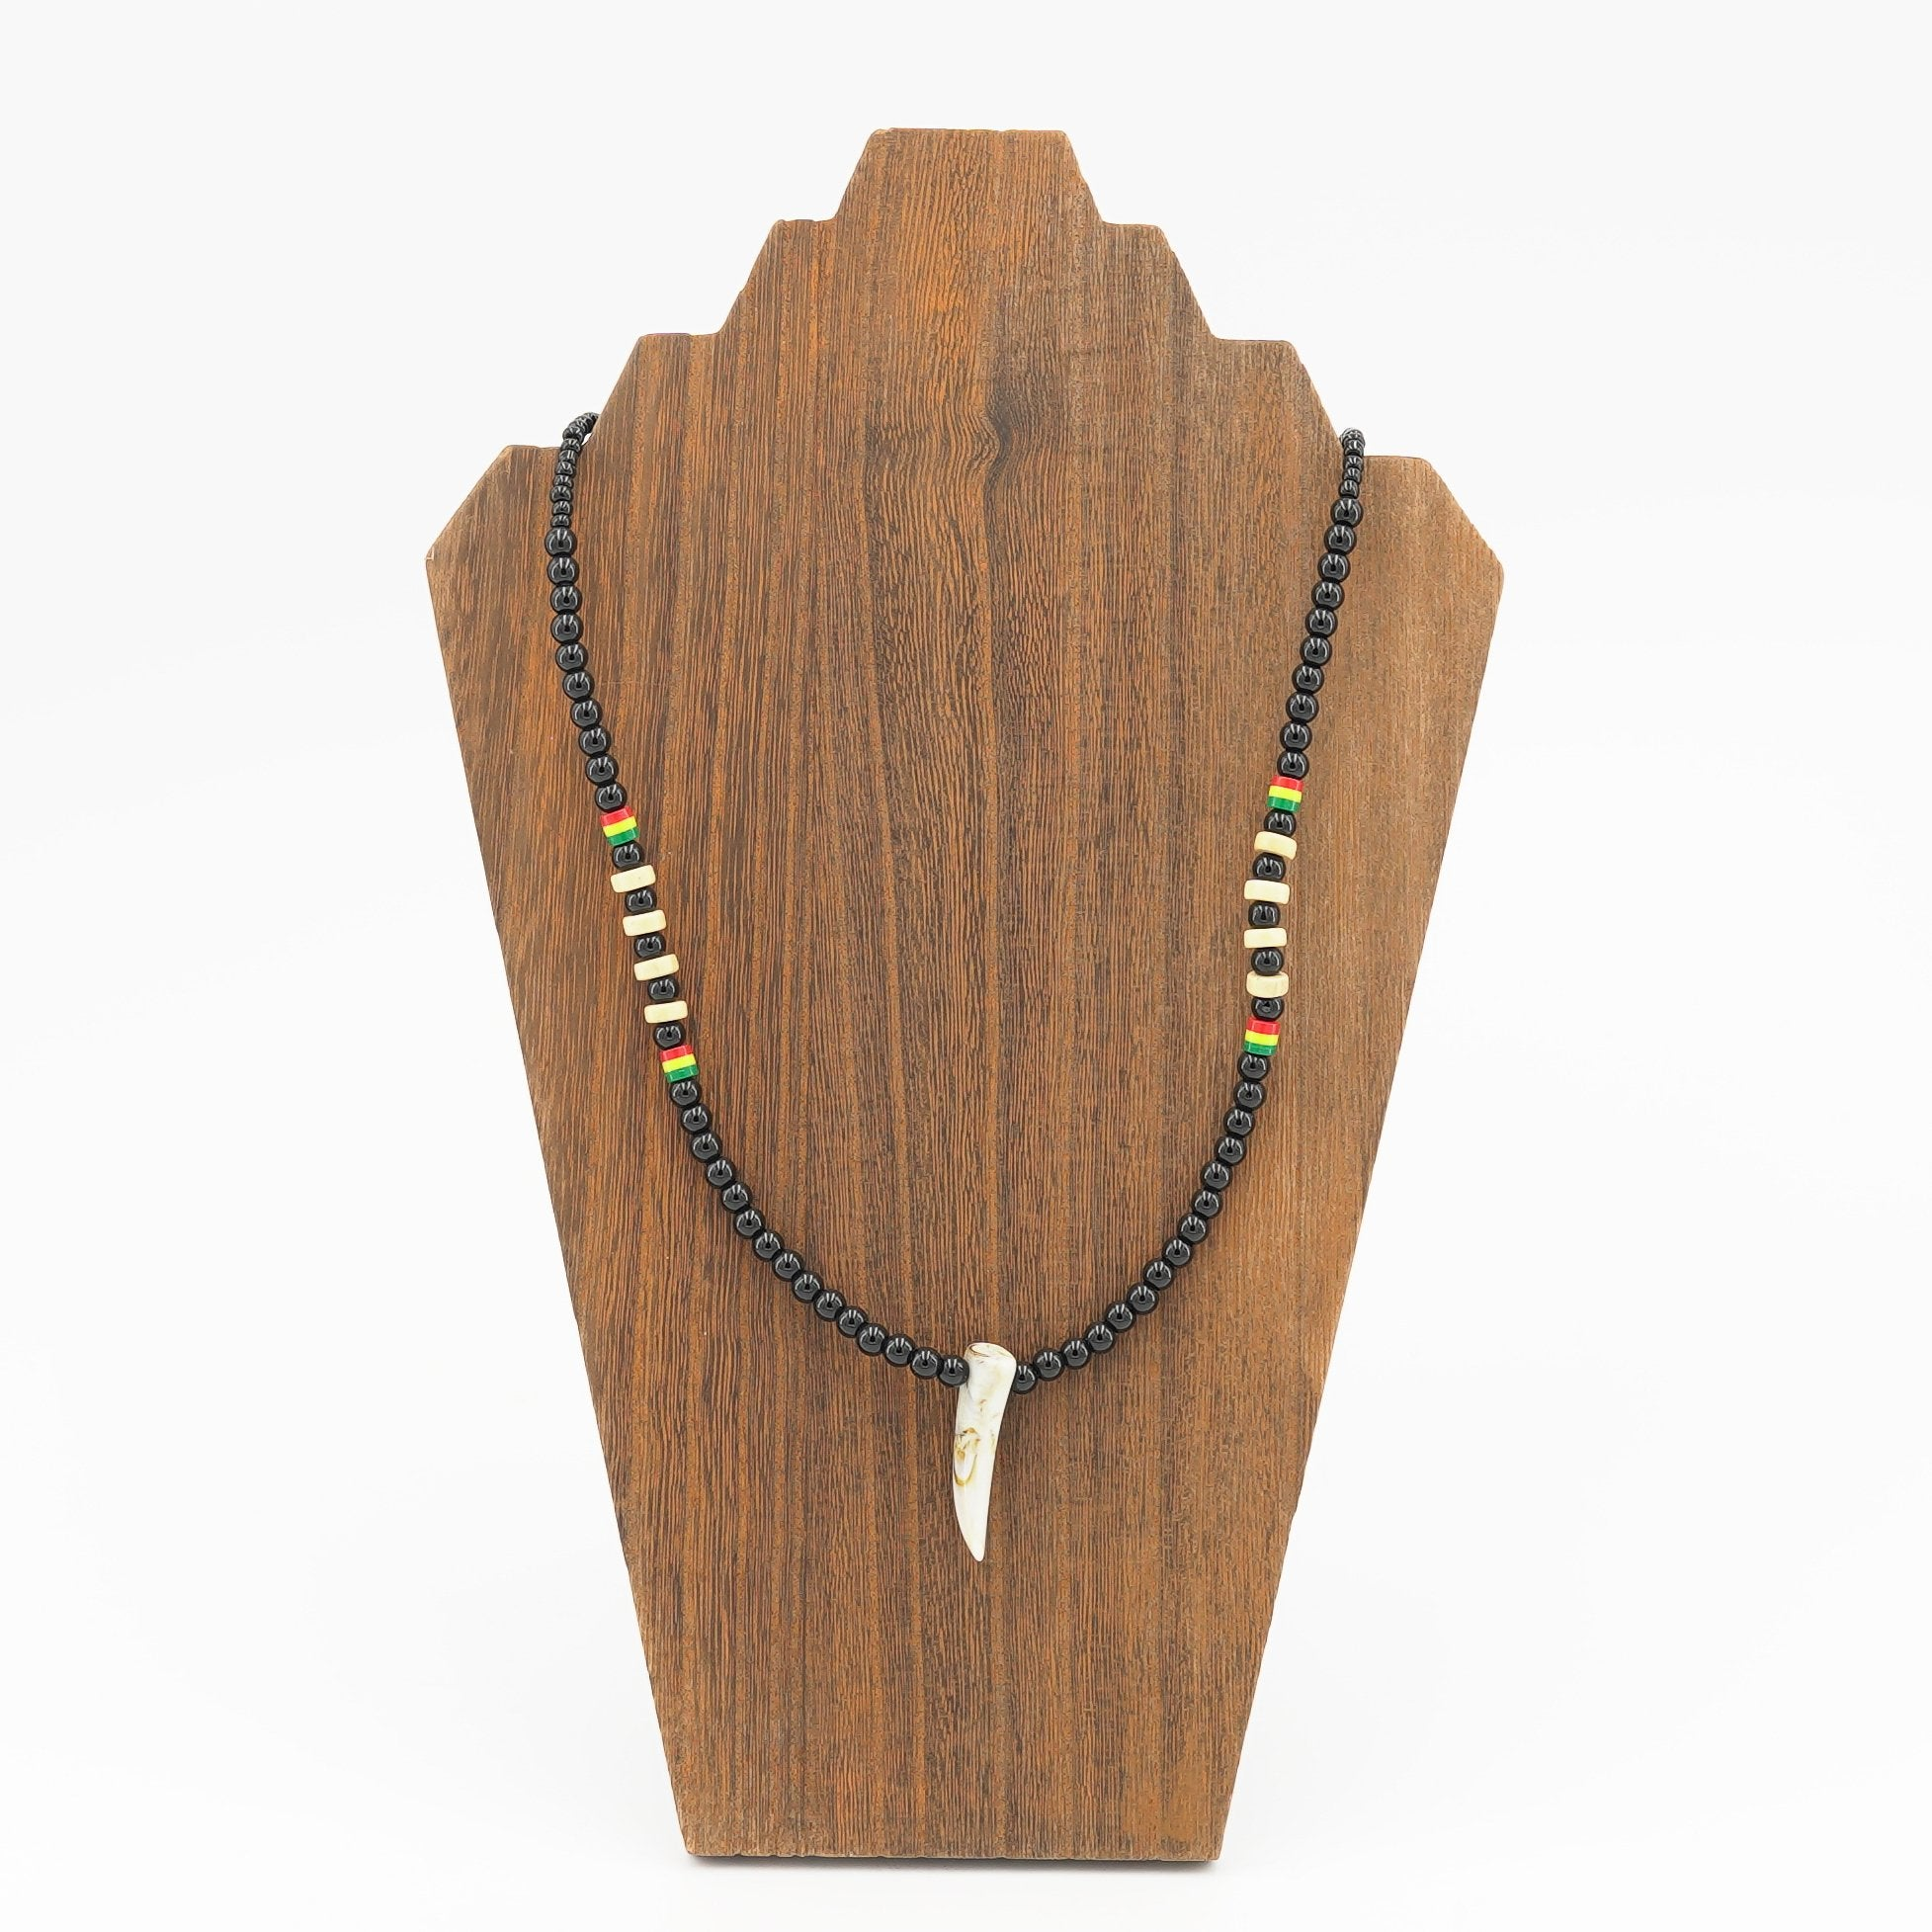 Ezana Handcrafted Necklace